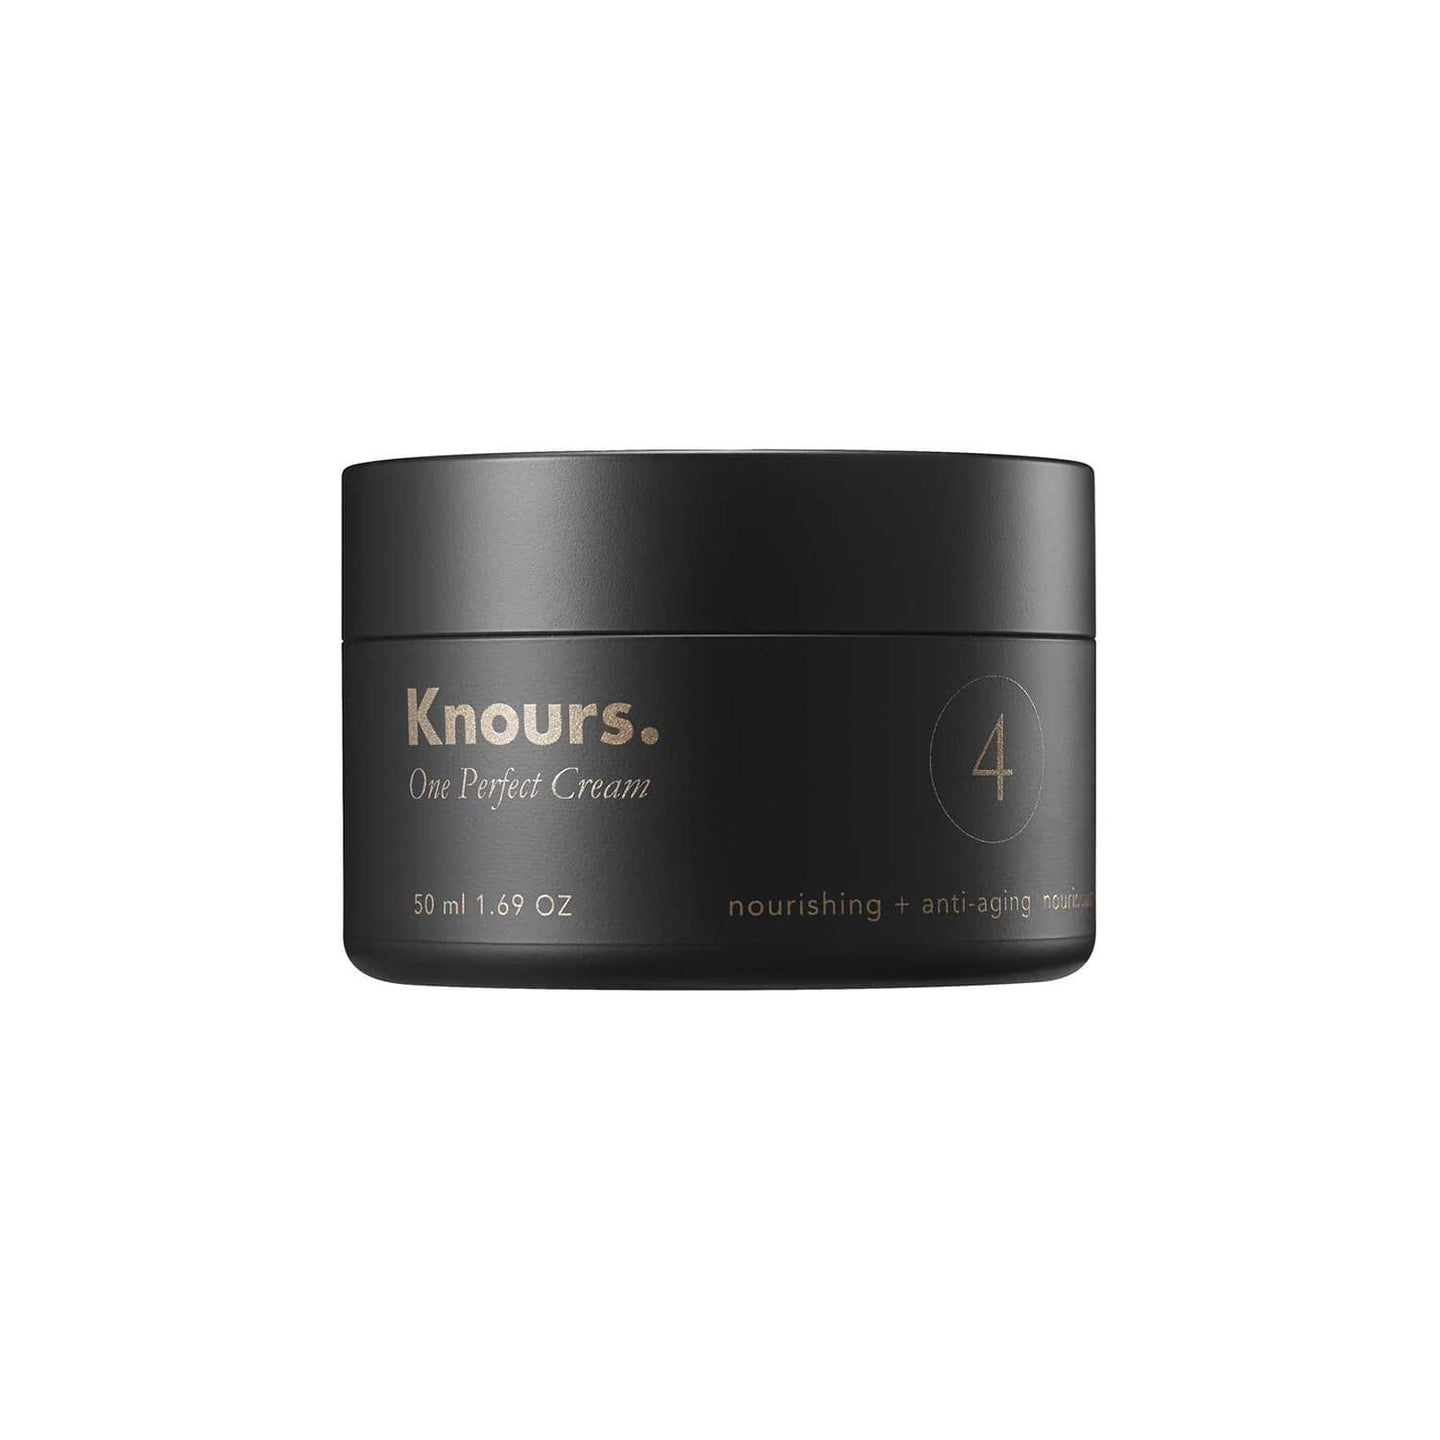 Knours One Perfect Cream